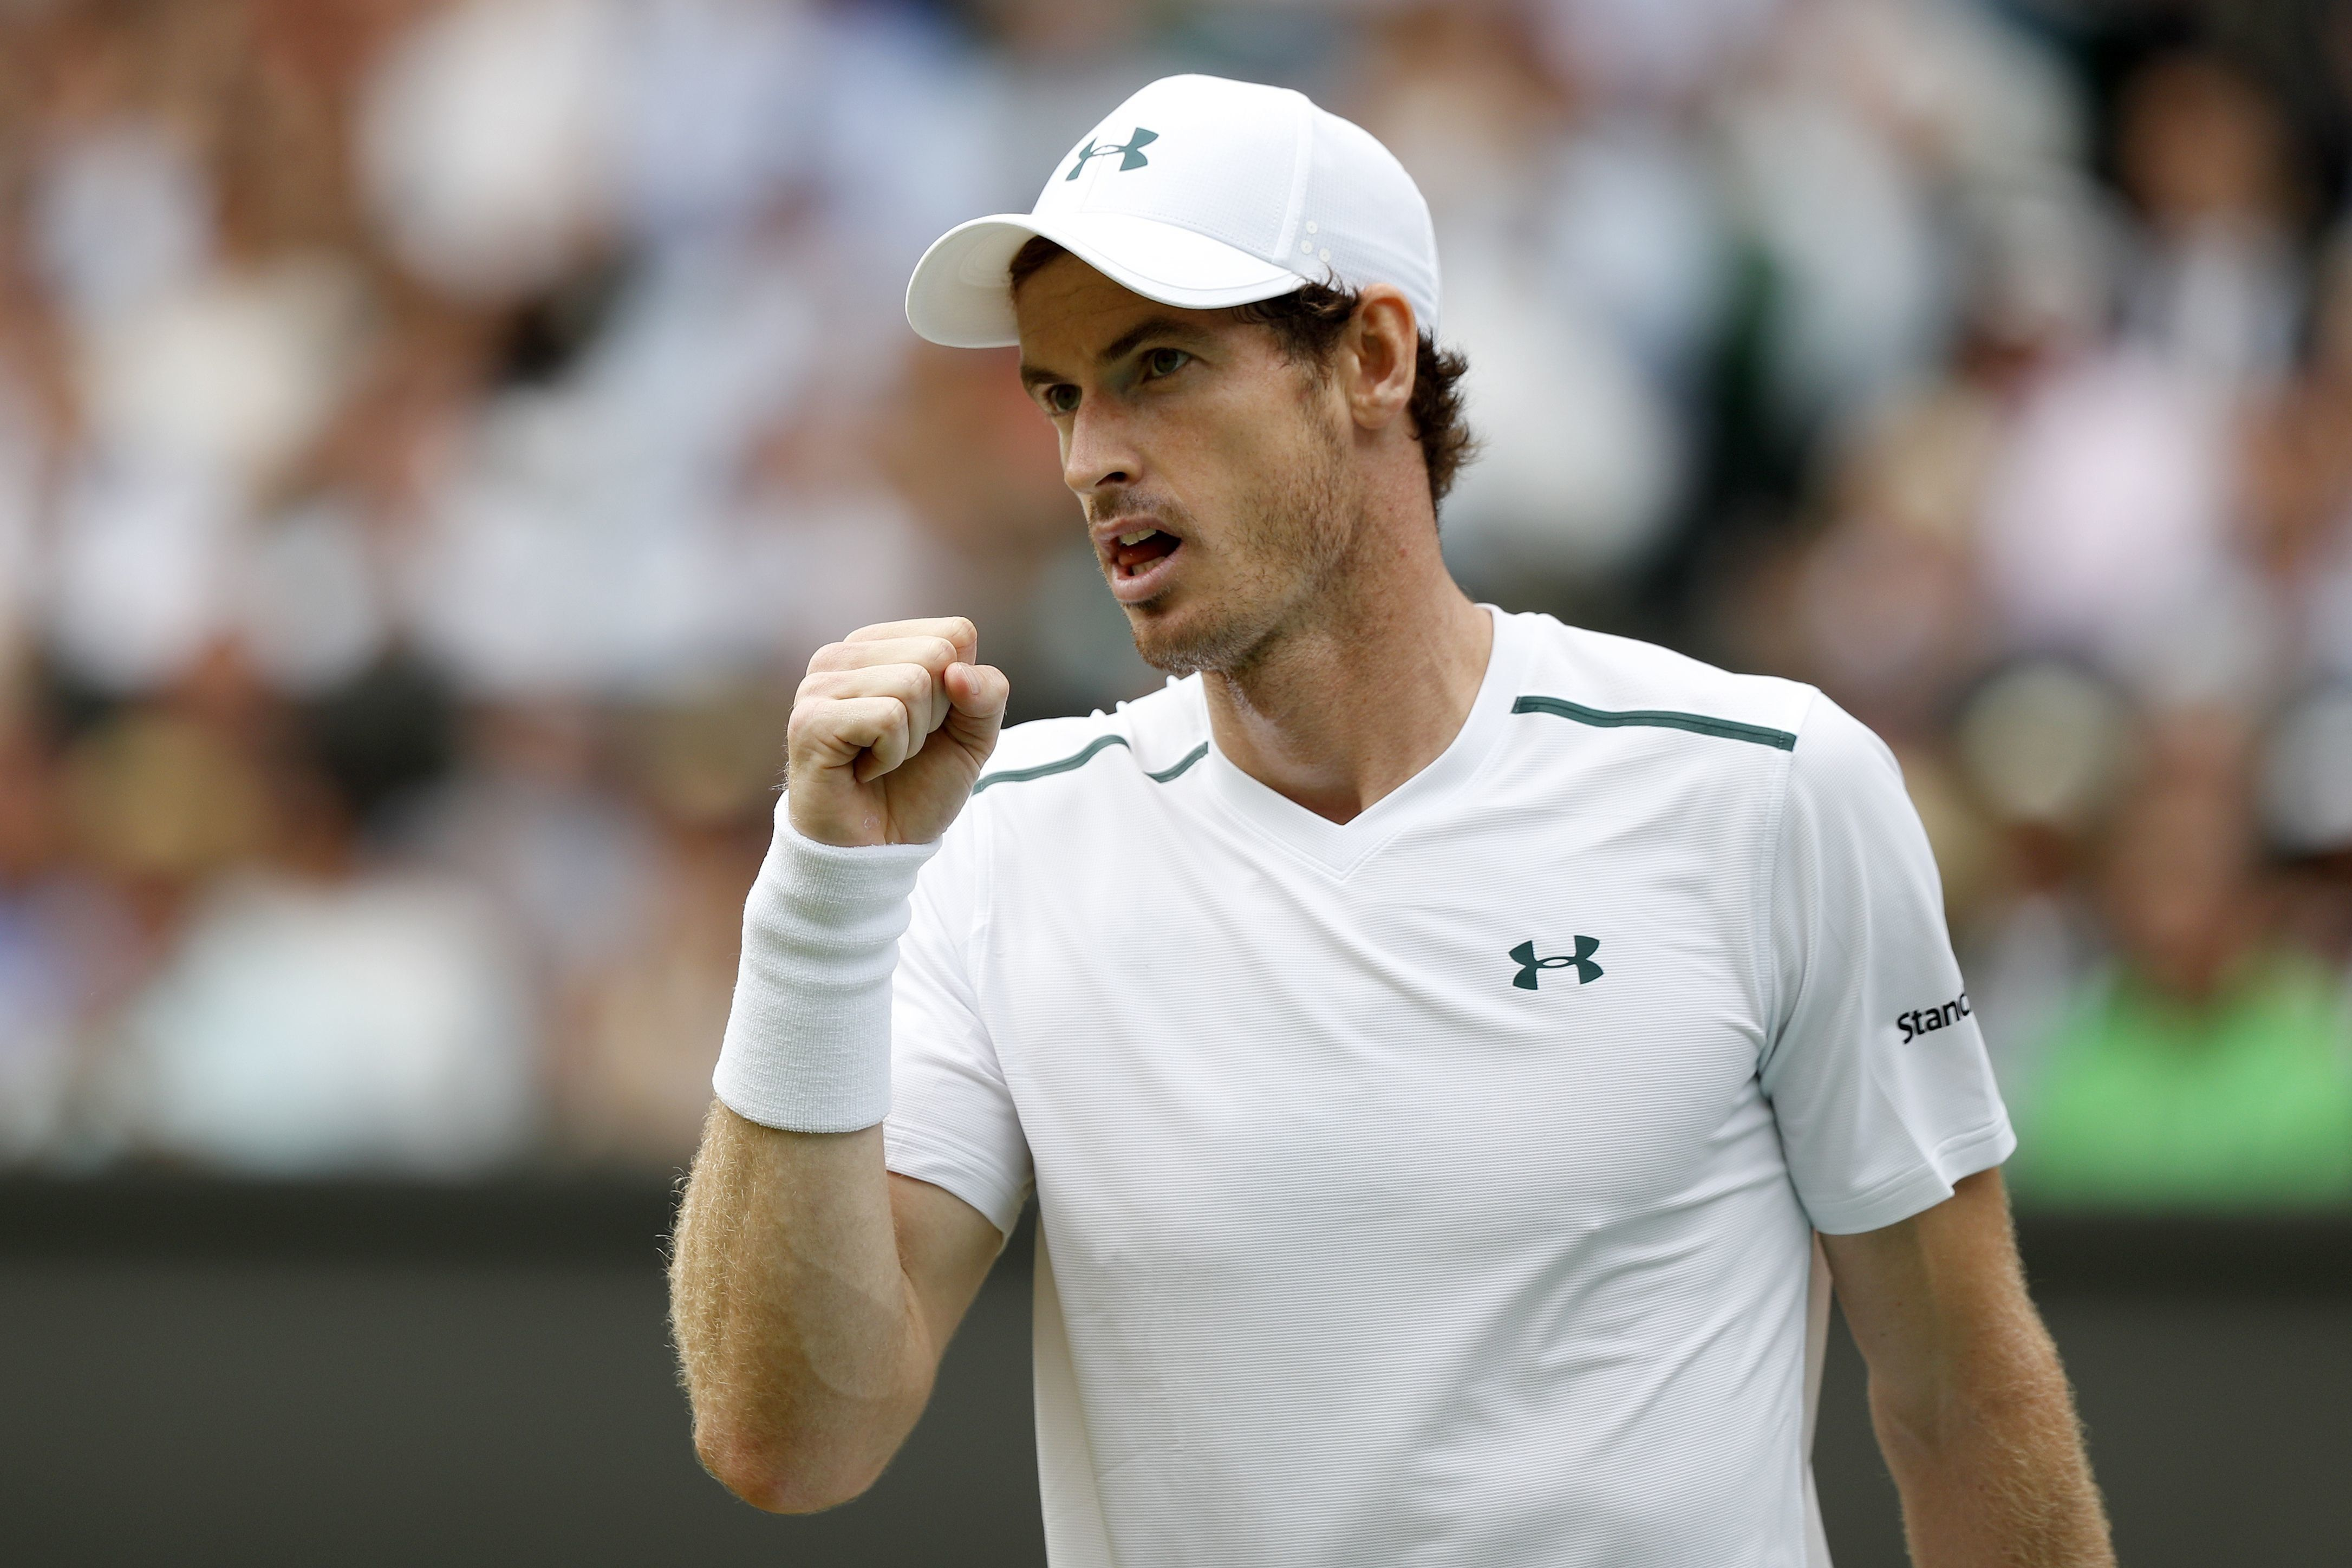 Britain's Andy Murray reacts after winning a point against France's Benoit Paire during their men's singles fourth round match on the seventh day of the 2017 Wimbledon Championships at The All England Lawn Tennis Club in Wimbledon, southwest London, on July 10, 2017. / AFP PHOTO / Adrian DENNIS / RESTRICTED TO EDITORIAL USE        (Photo credit should read ADRIAN DENNIS/AFP/Getty Images)